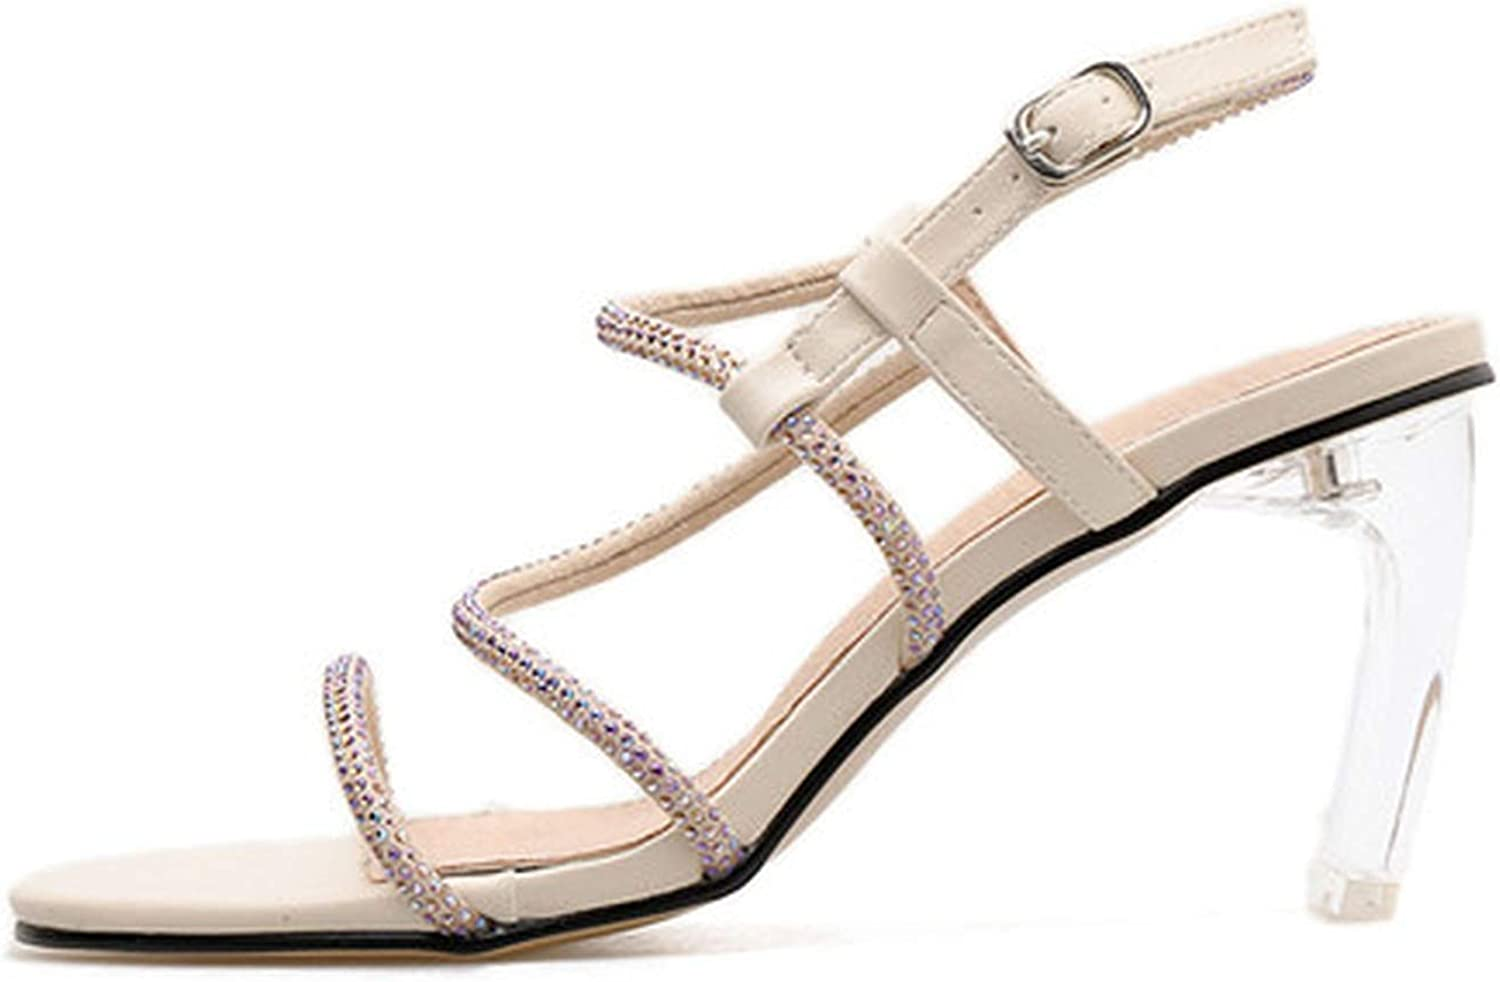 Sunshine-Family Summer Sandals Sexy Transparent Heel Crystal Open Toed High Heels Buckle Strap Women Square Heels Sandals